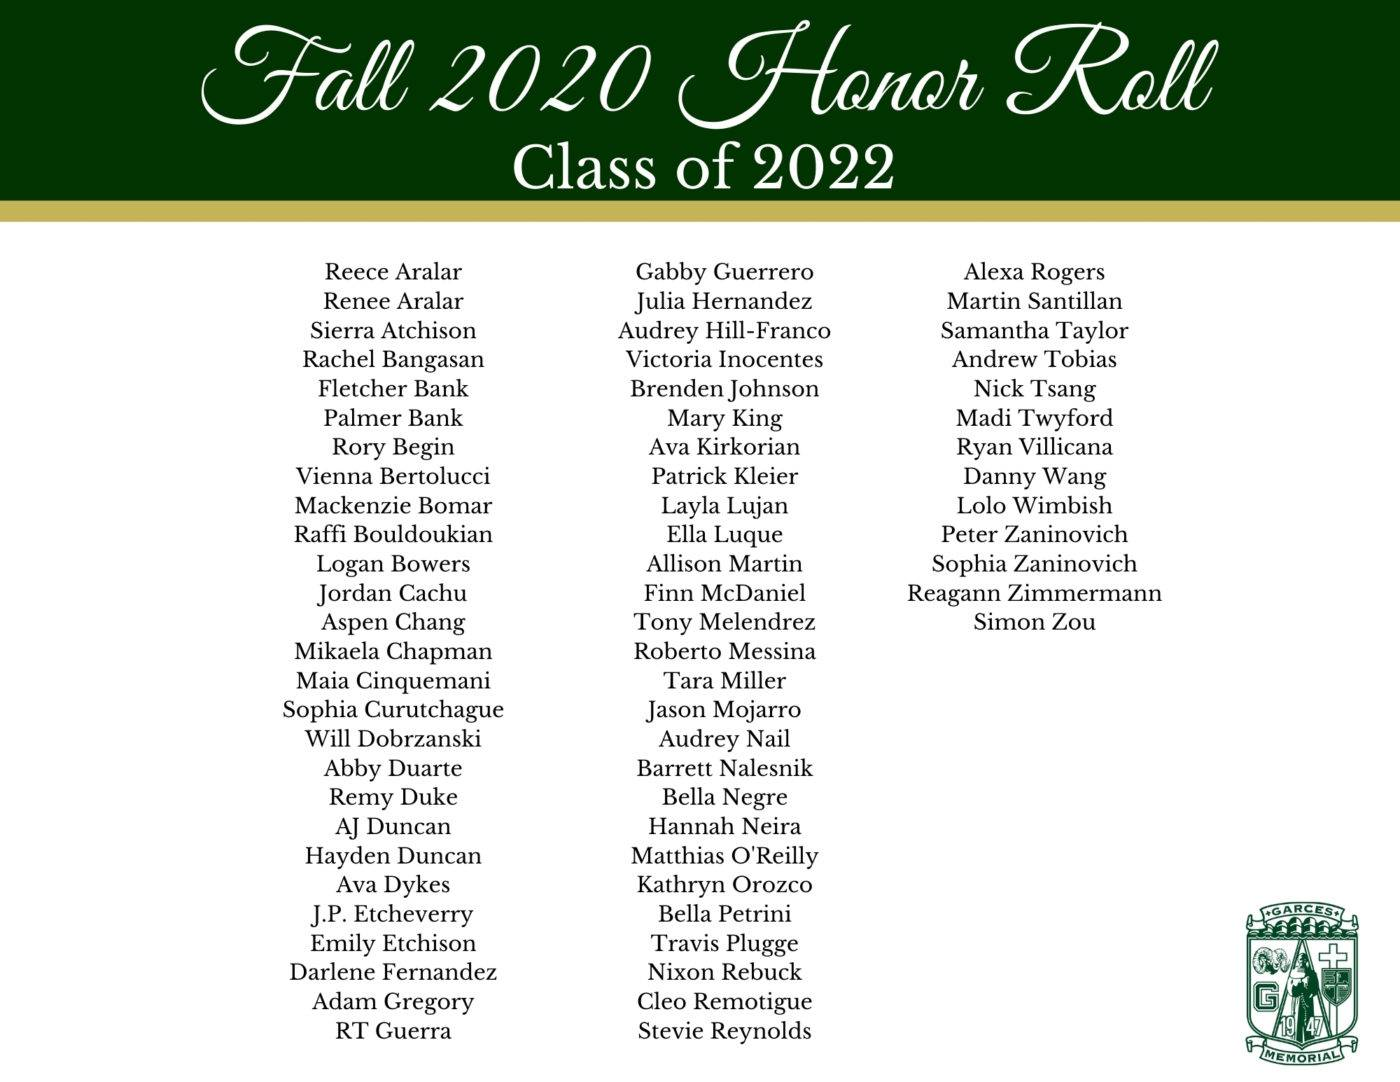 Honor Roll Class of 2022